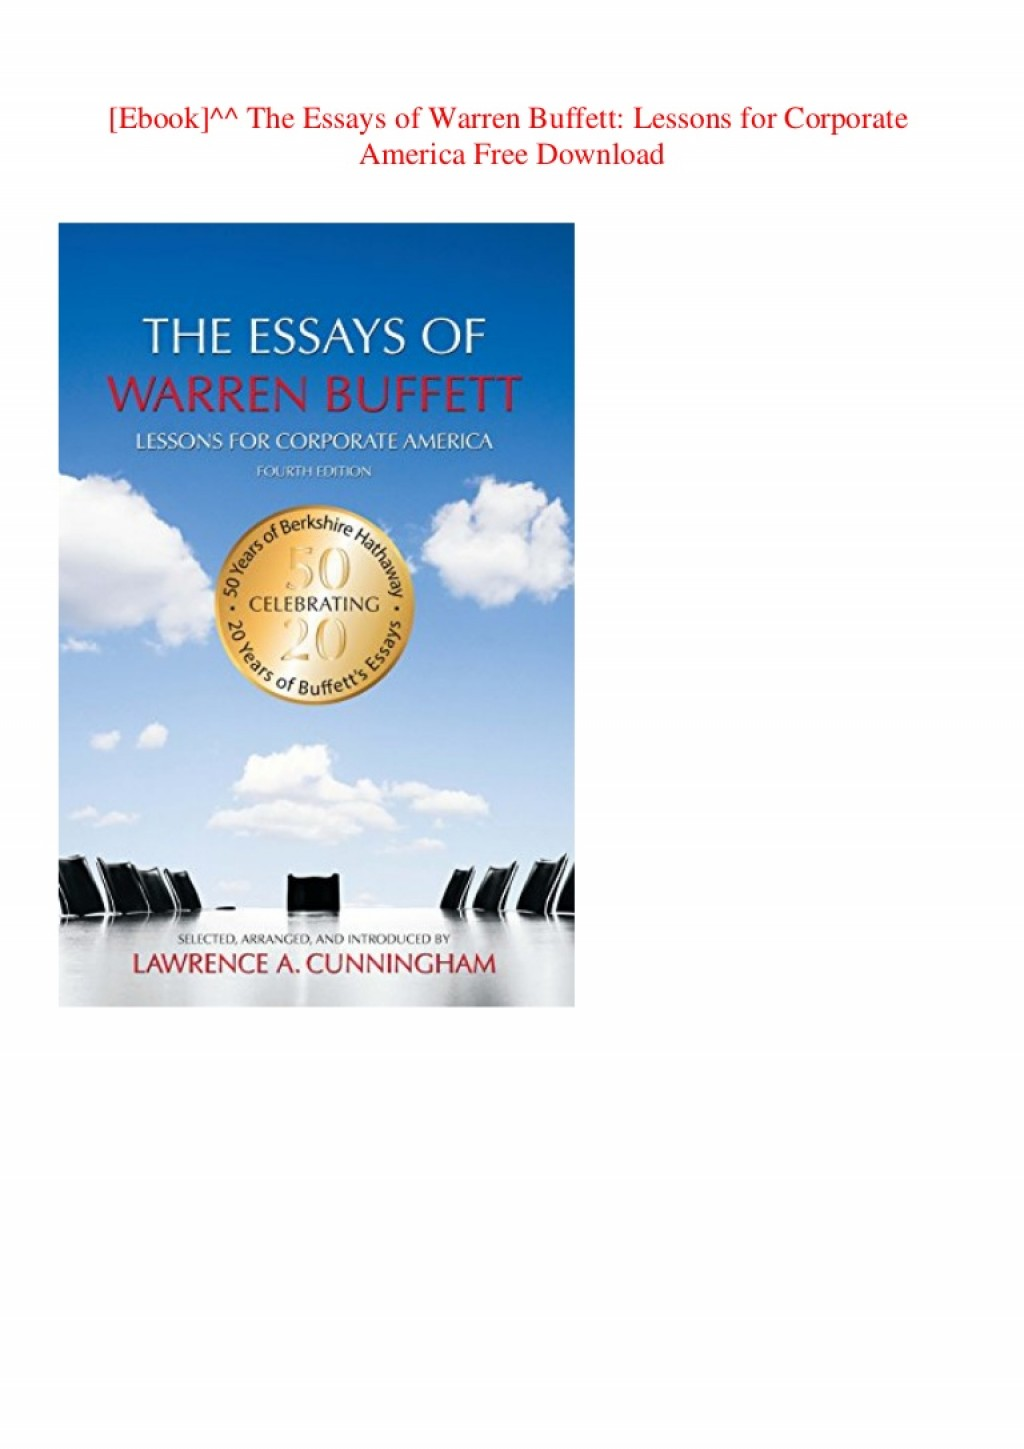 022 Essay Example The Essays Of Warren Buffett Lessons For Corporate America Ebooktheessaysofwarrenbuffettlessonsforcorporateamericafreedownload Thumbnail Remarkable Third Edition 3rd Second Pdf Audio Book Large